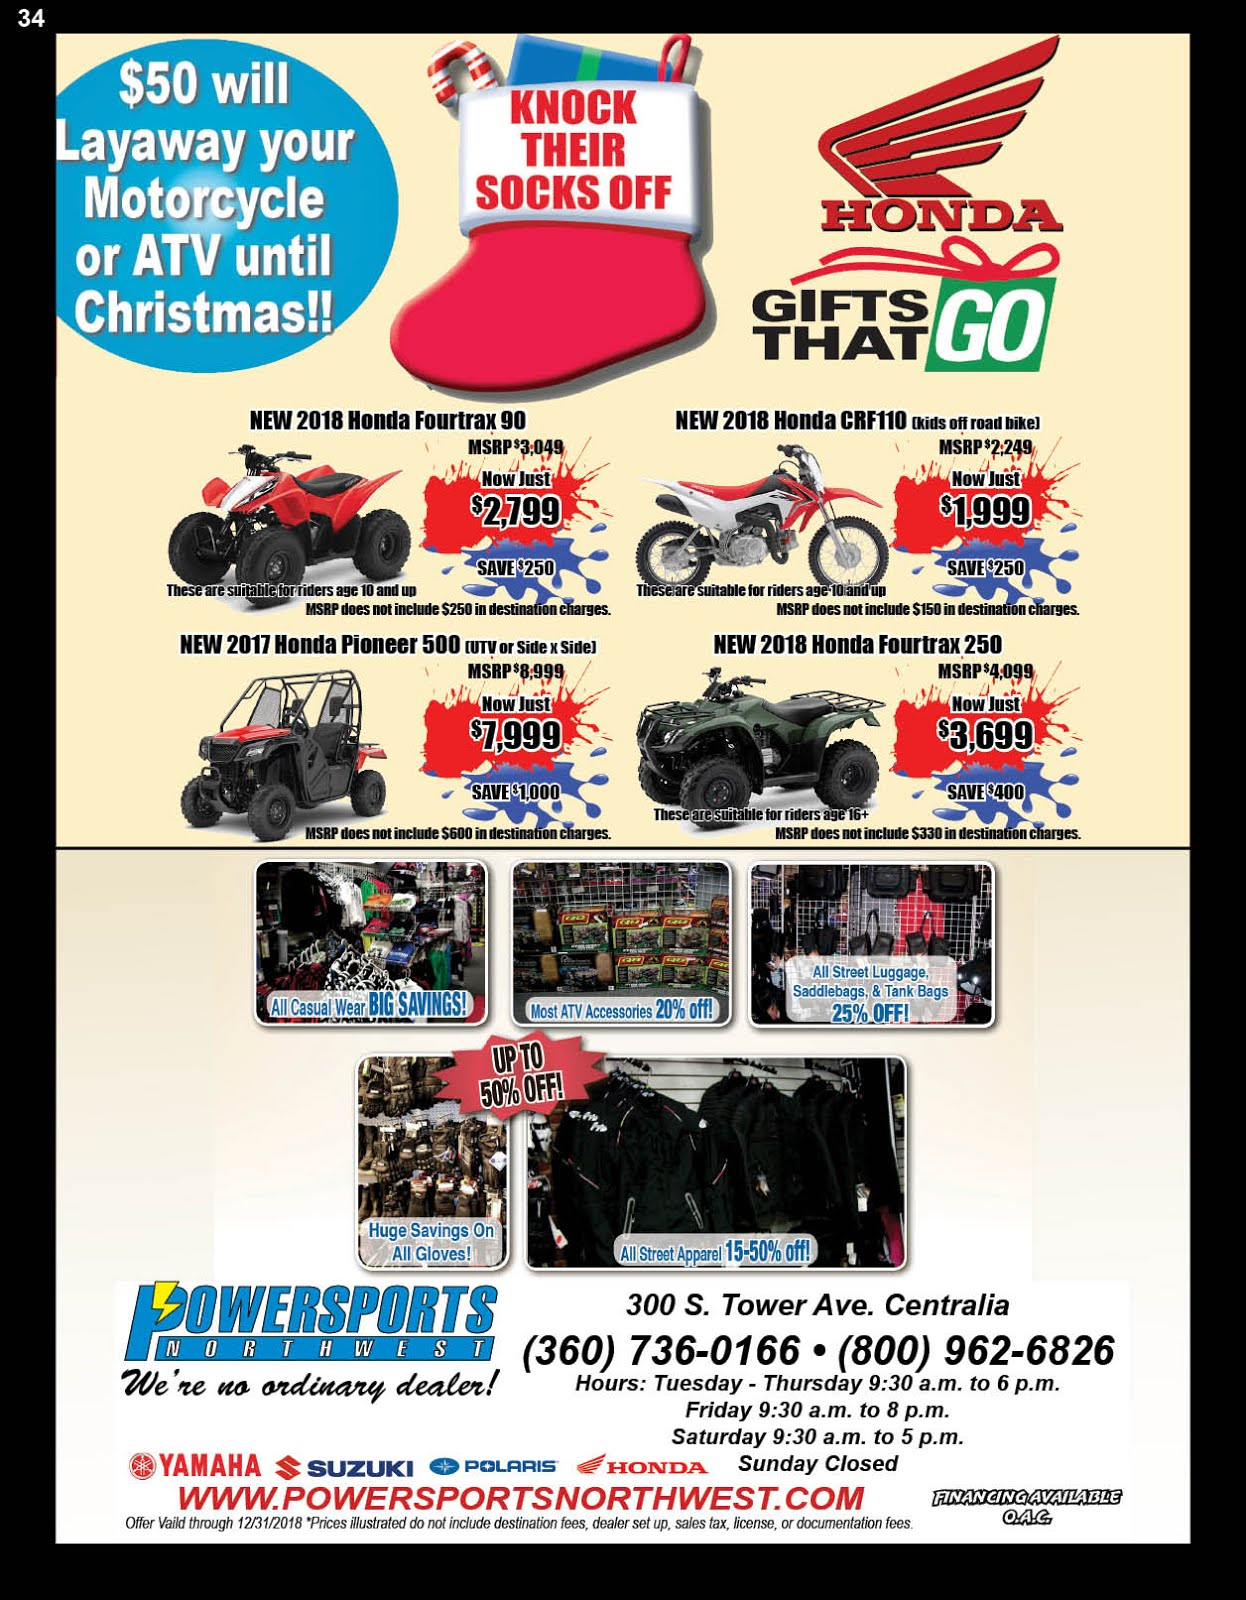 Powersports Northwest Honda Gifts That Go Sales Event!!